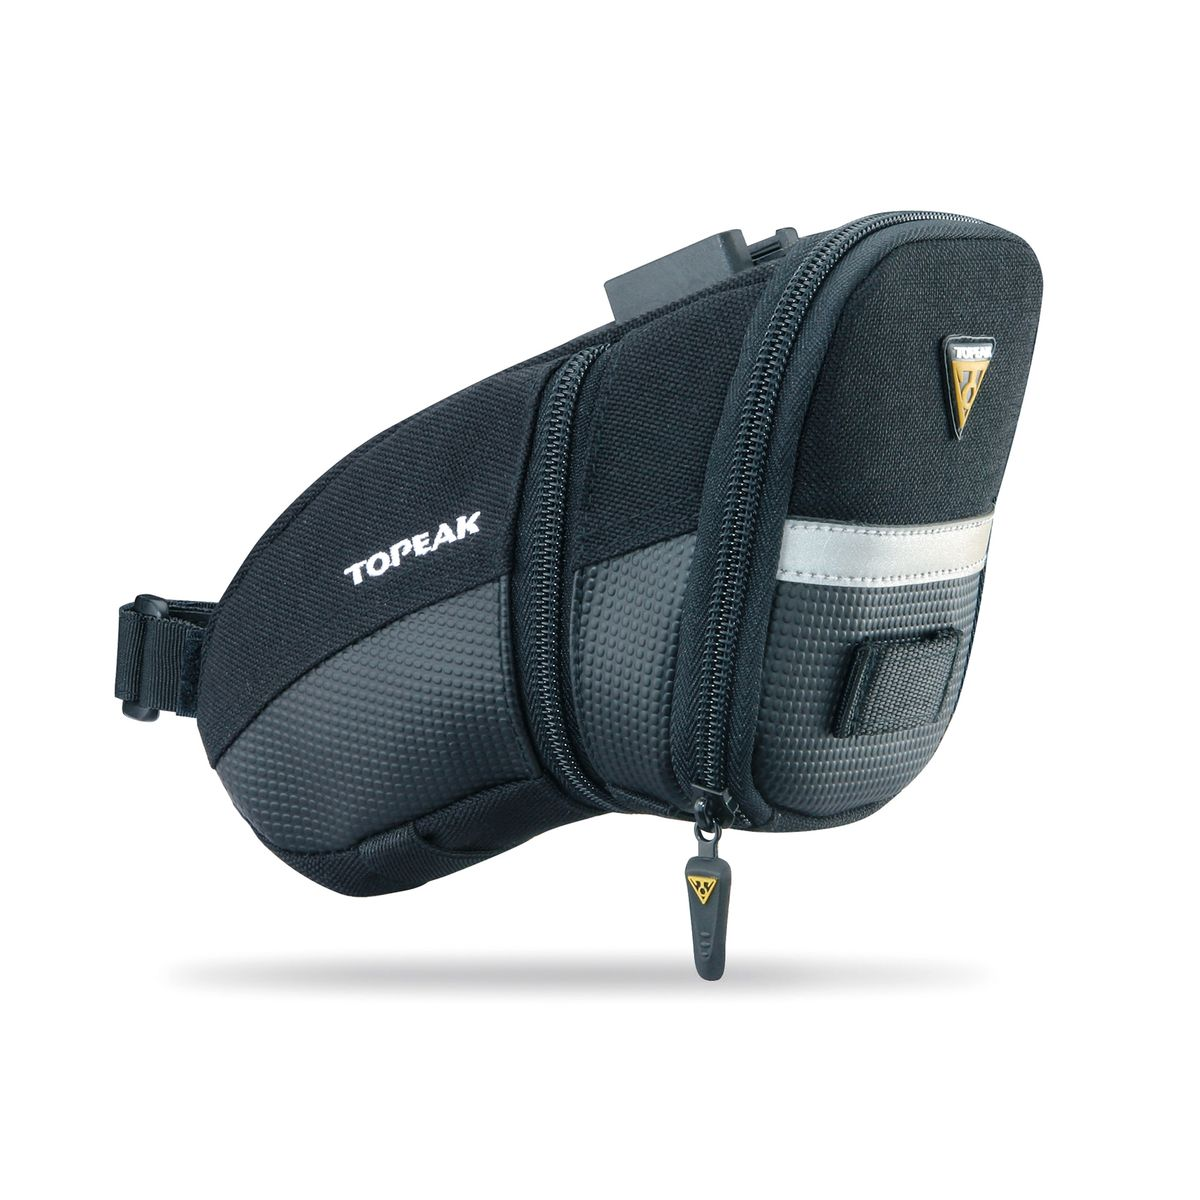 Topeak AERO WEDGE PACK MEDIUM saddle bag | Saddle bags